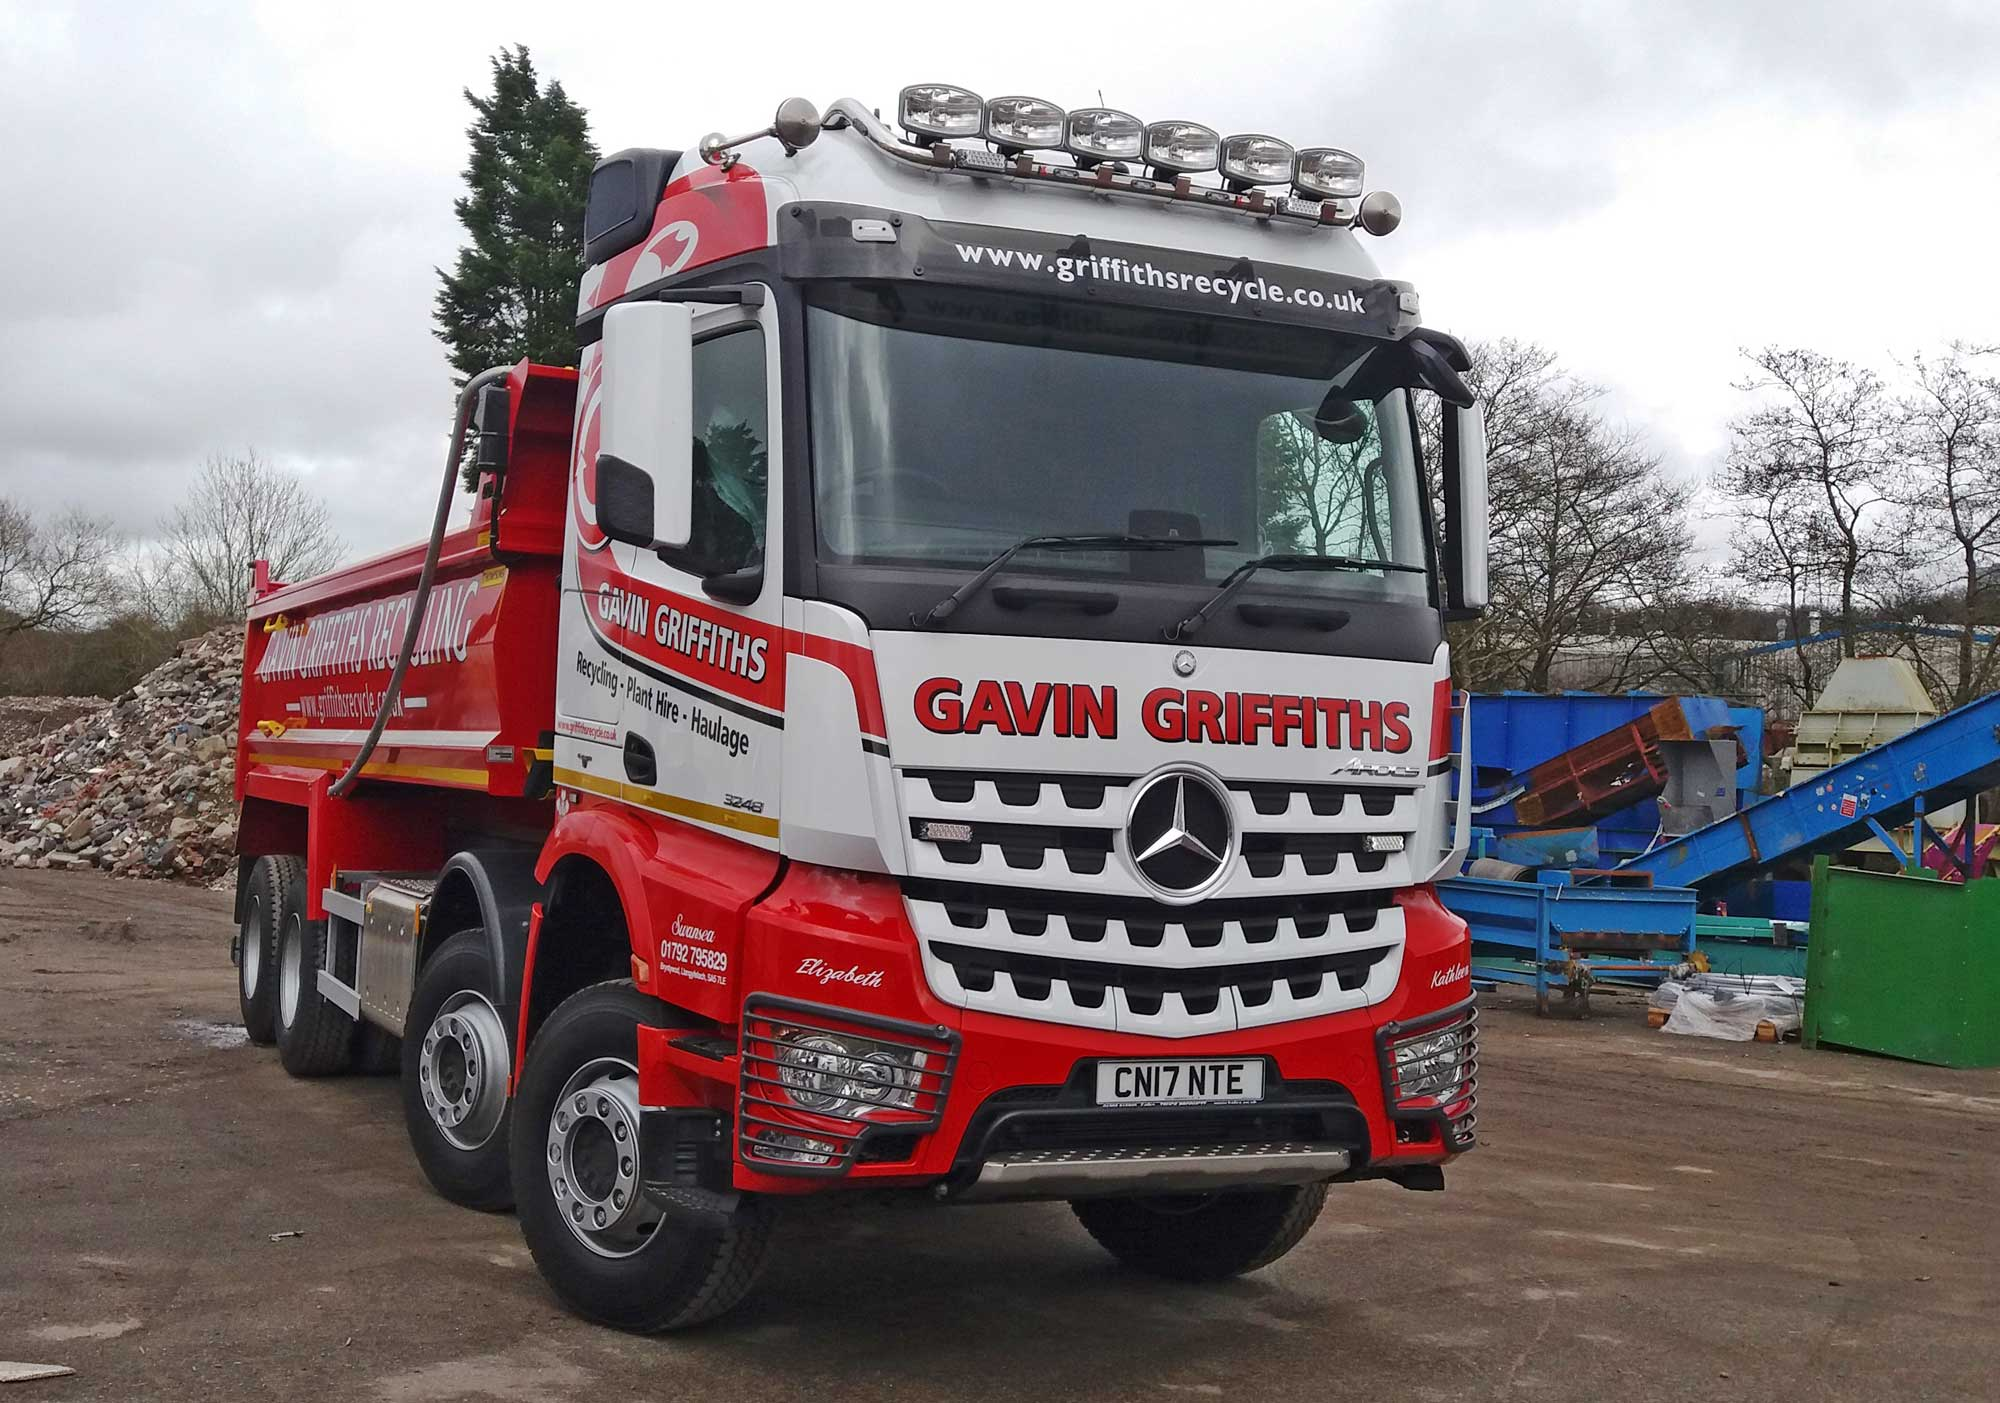 Gavin Griffiths Recycling Plant Hire Haulage